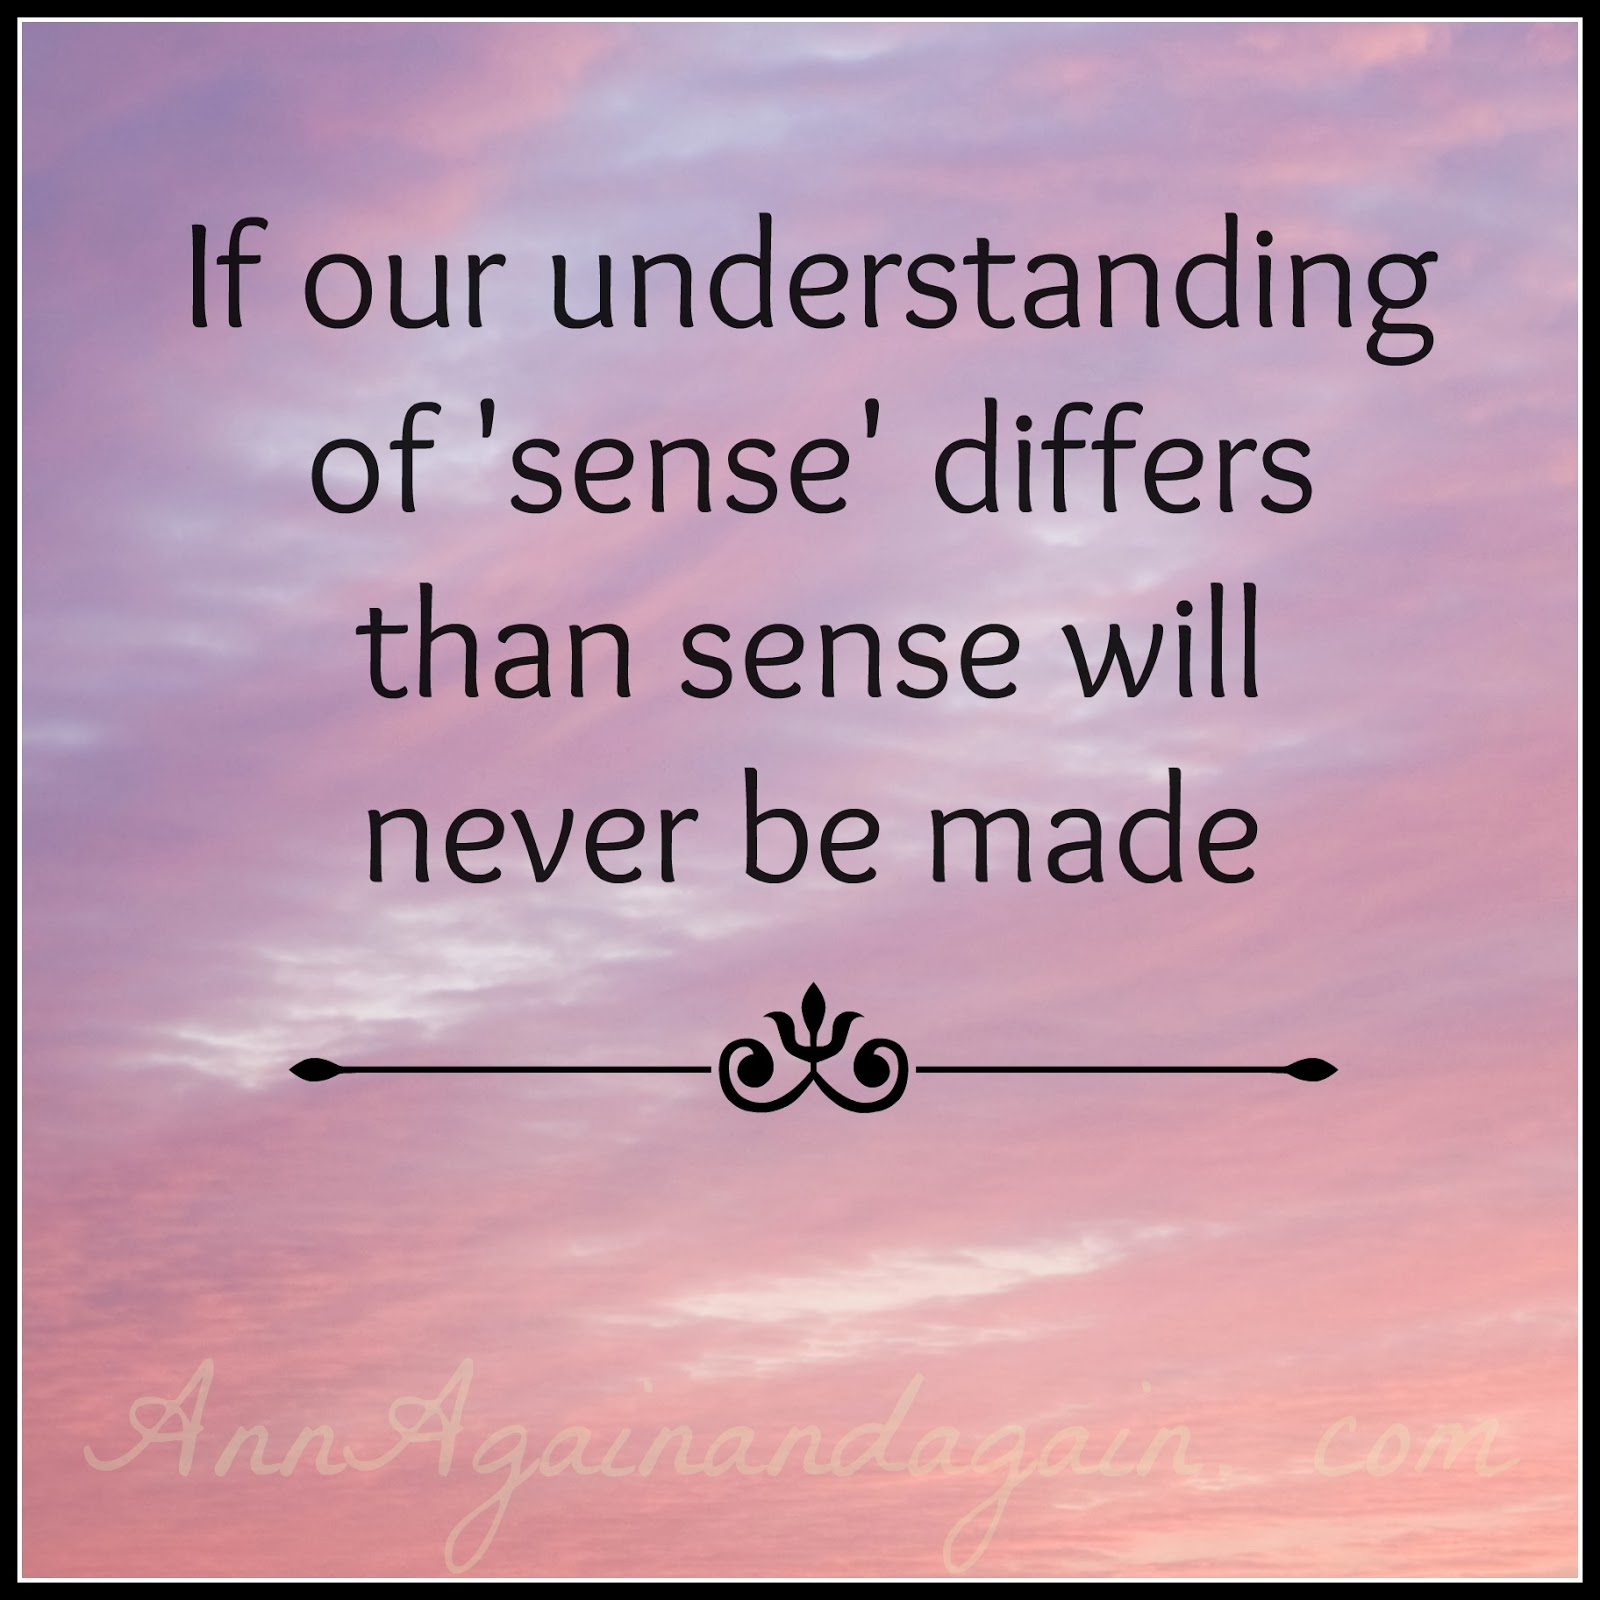 If our understanding of sense differs than sense will never be made - Ann Again and again